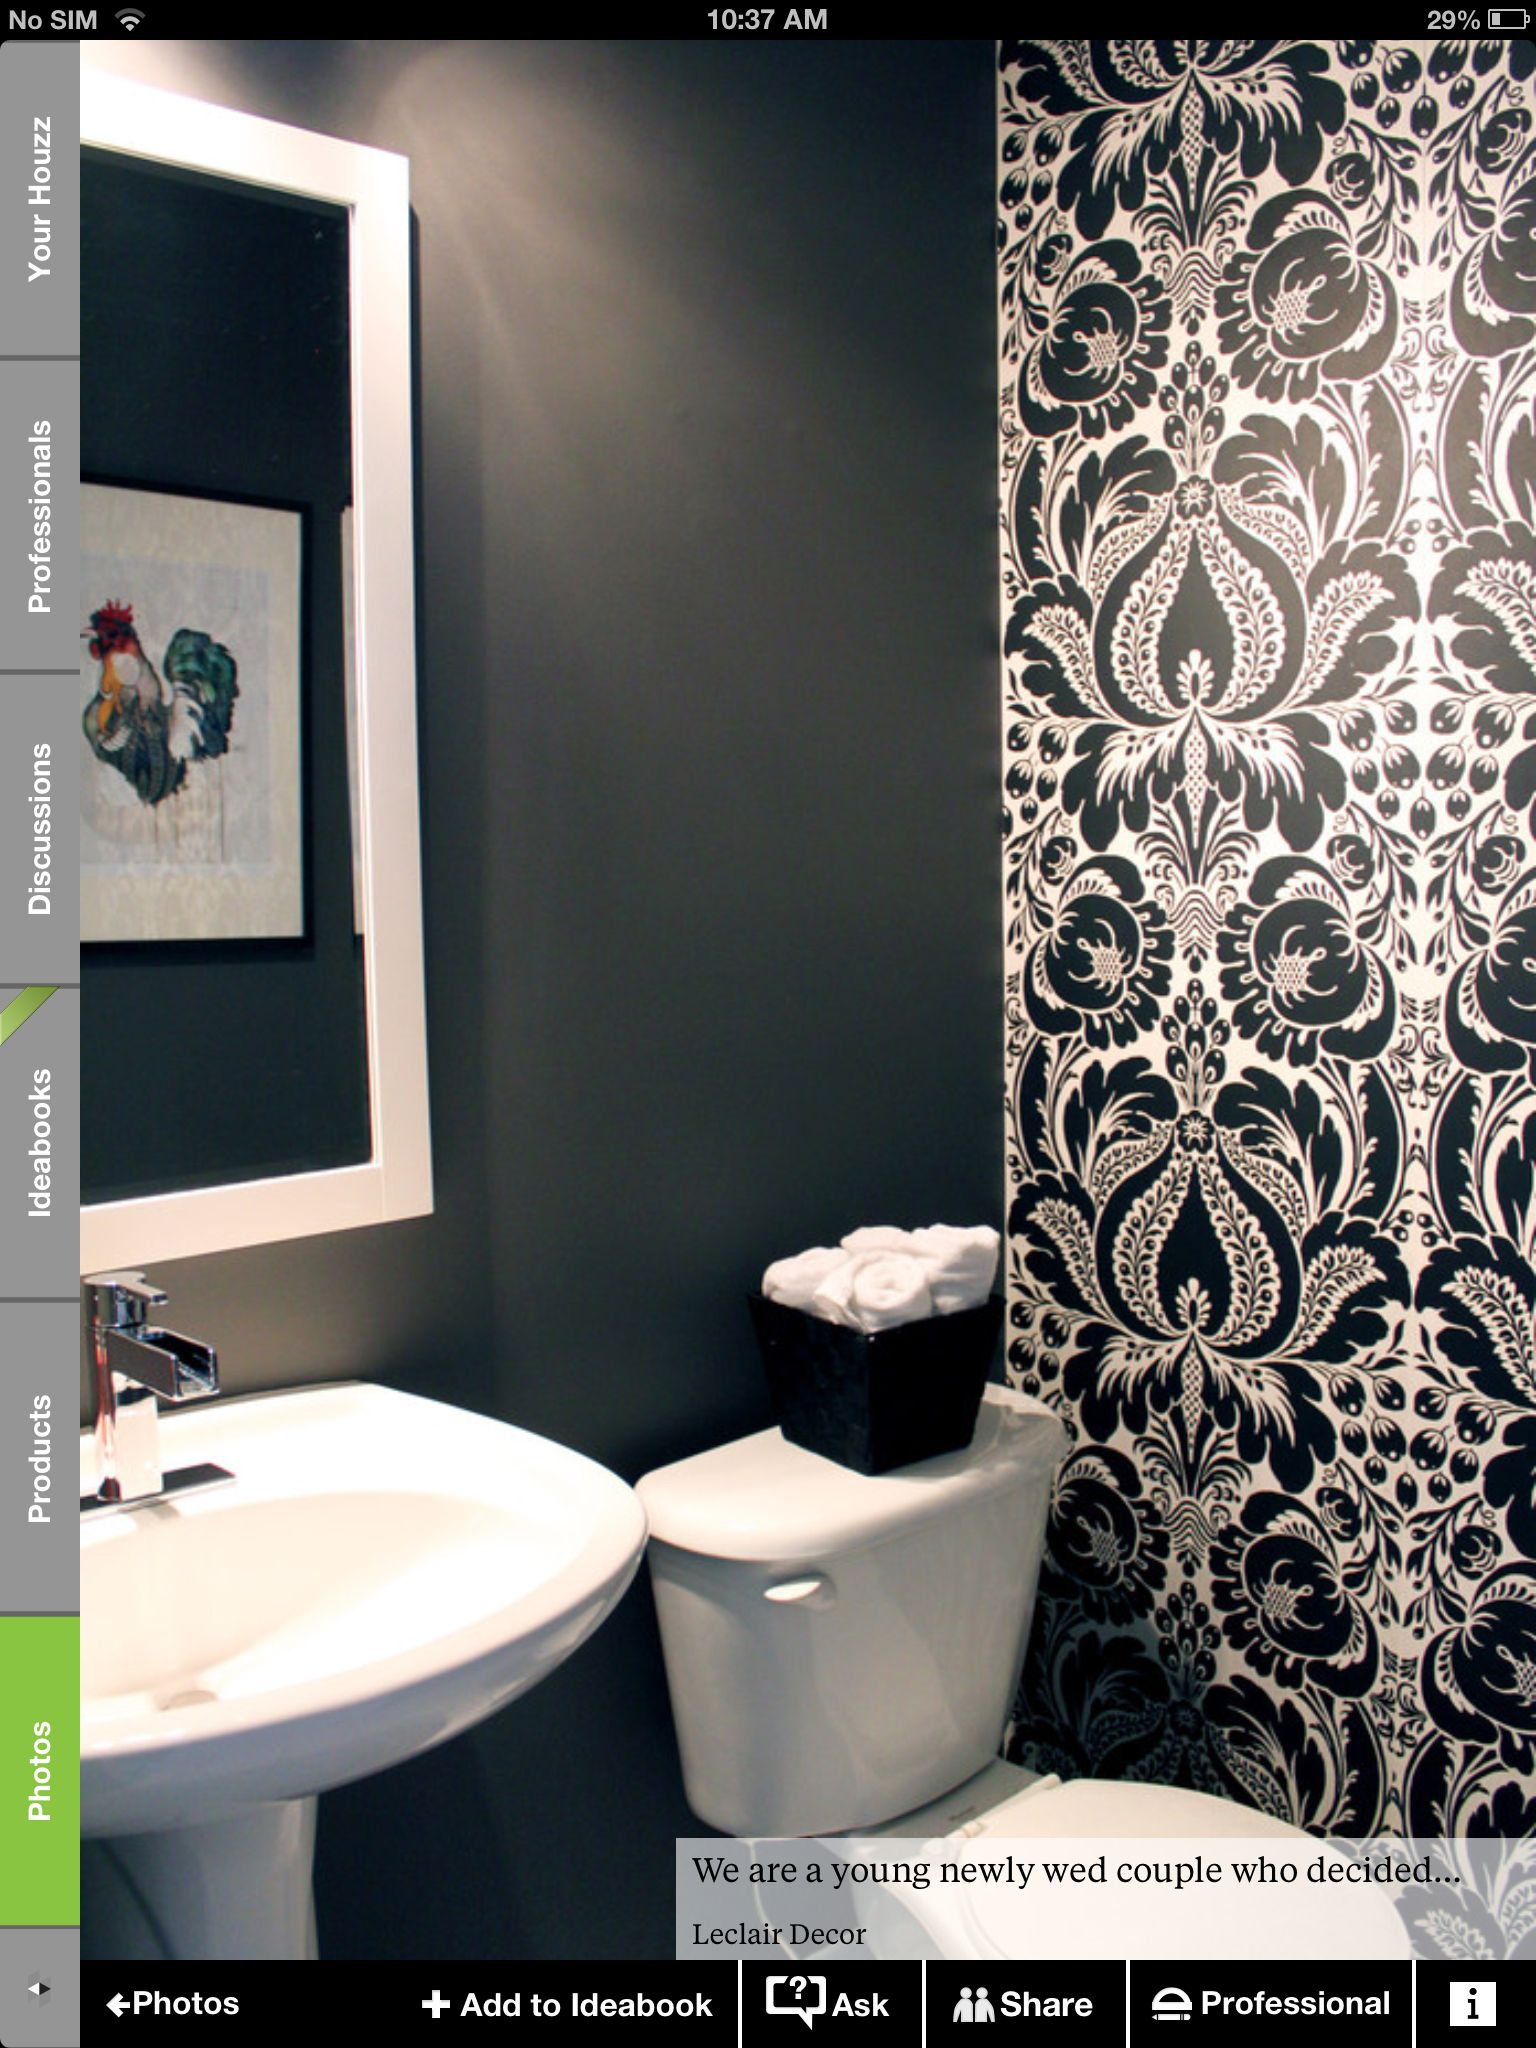 Black And White Wallpaper In A Powder Room Wallpaper Accent Wall Bathroom Powder Room Small Powder Room Design